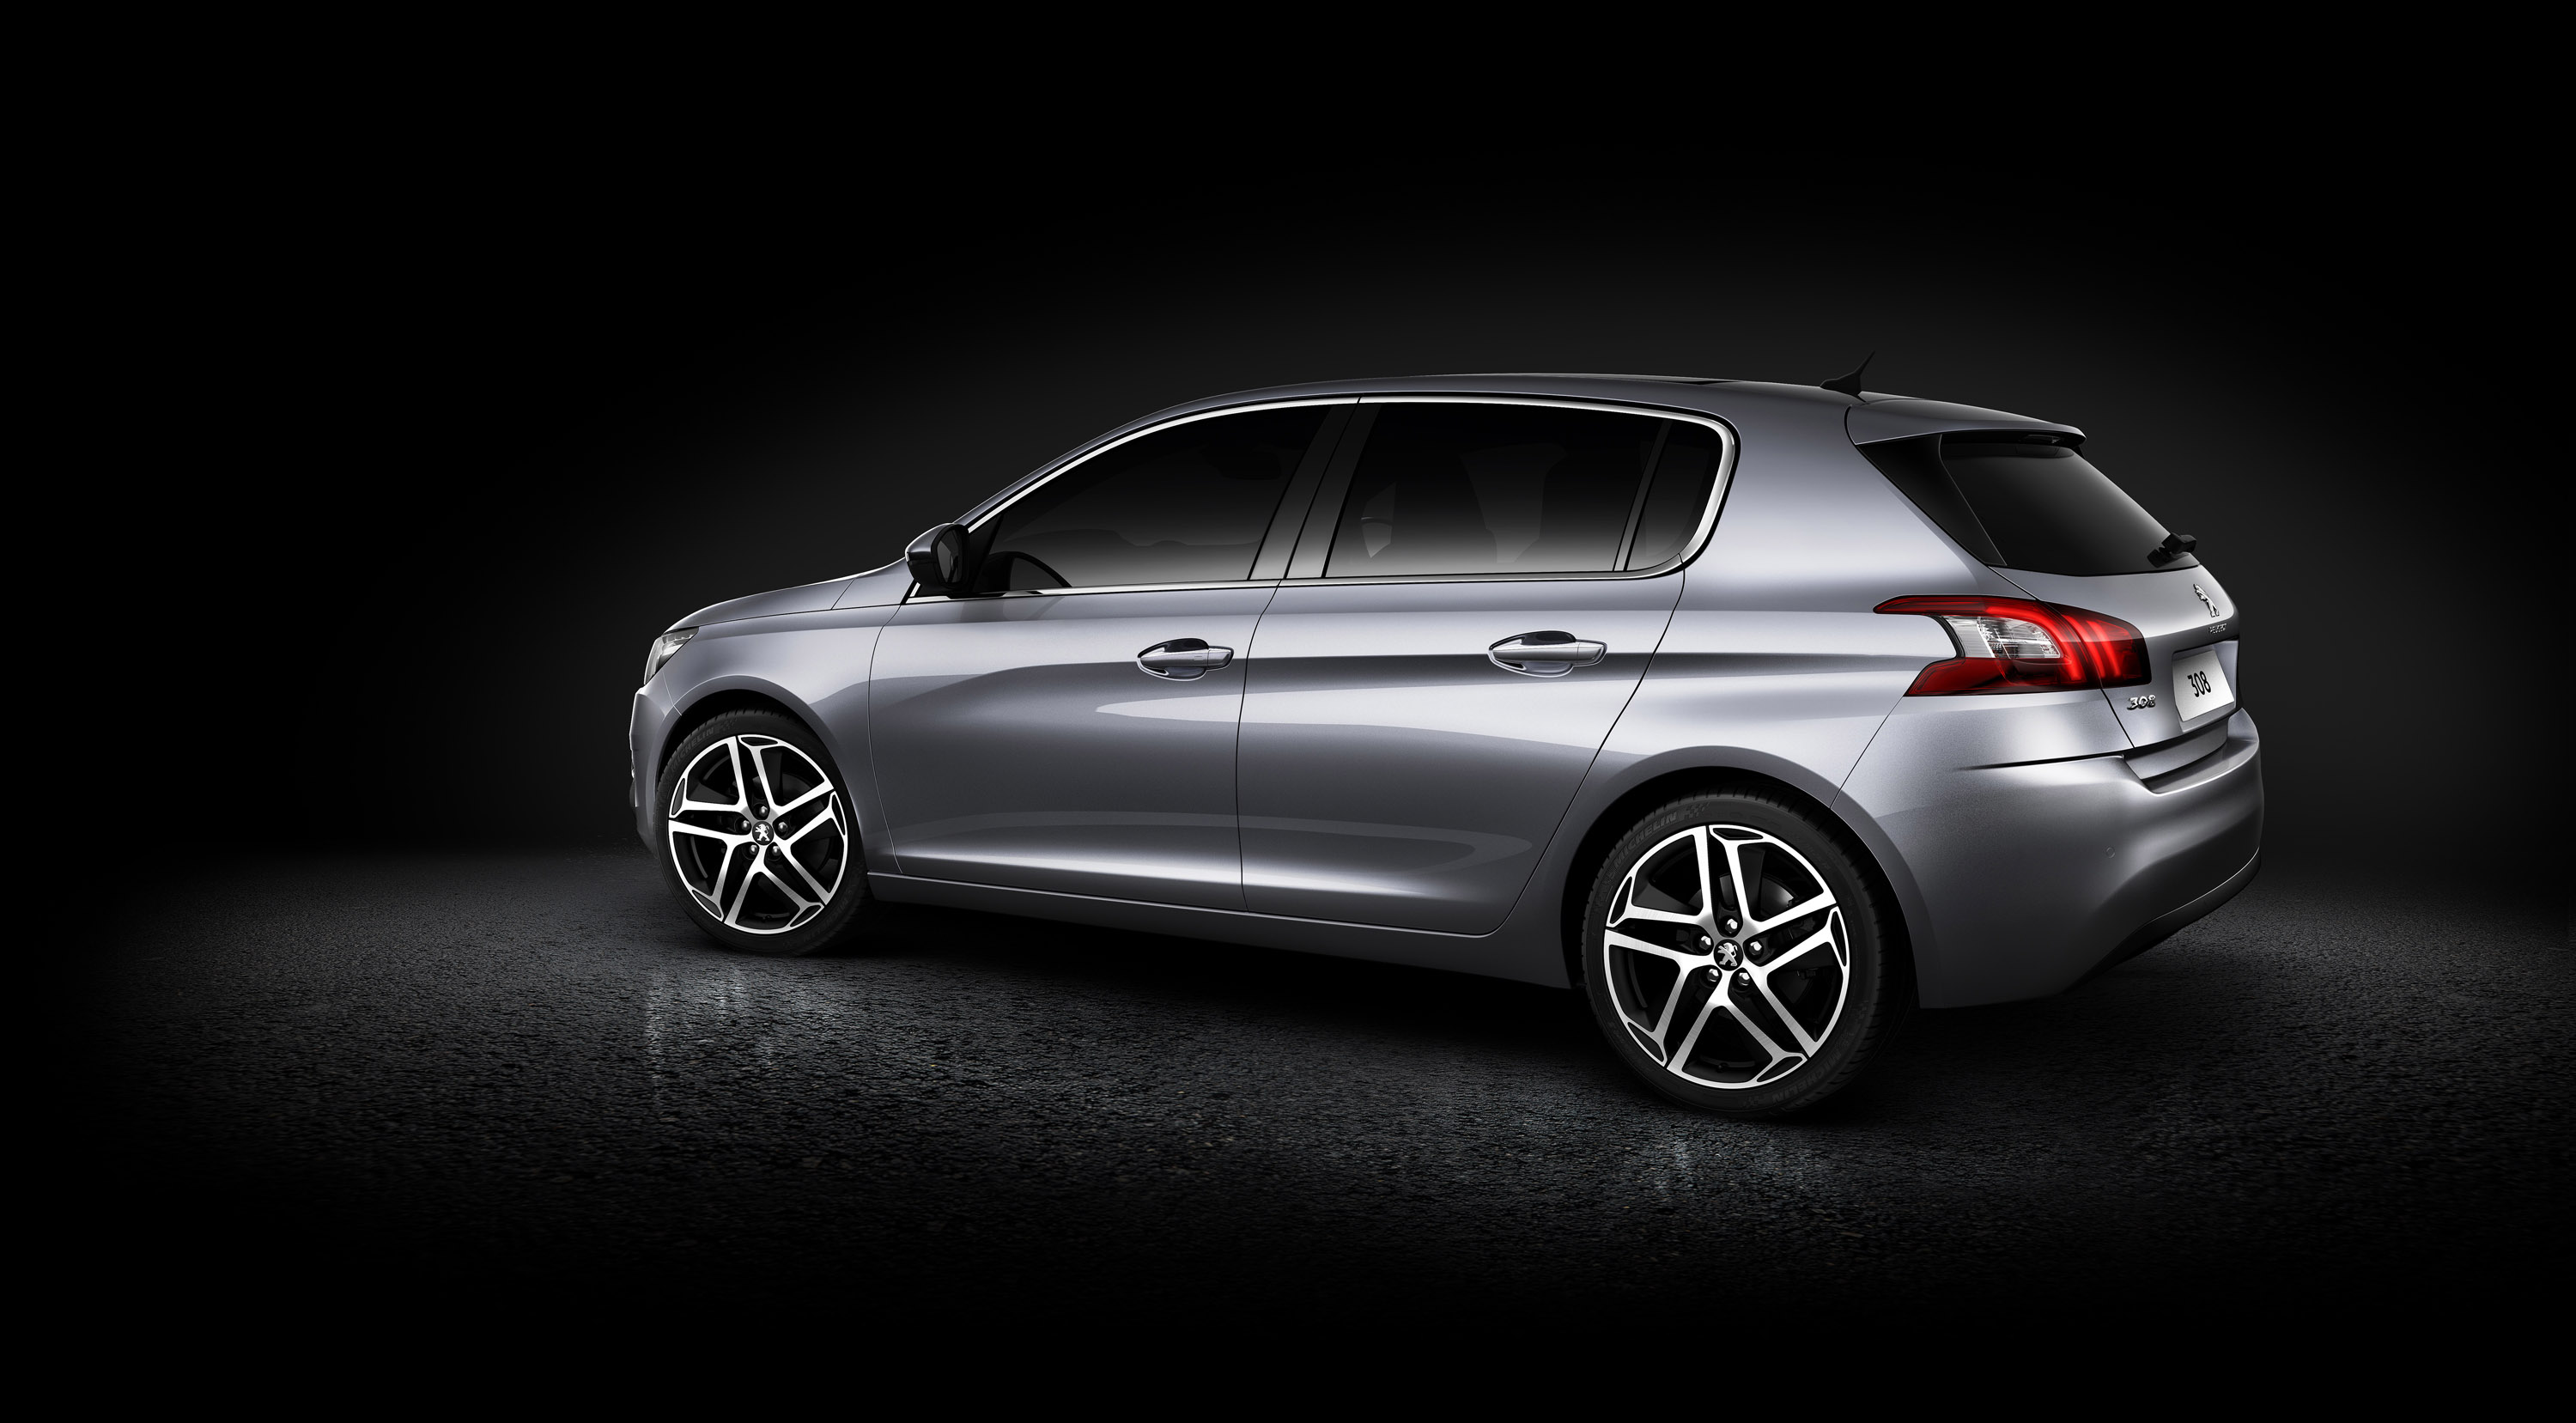 2014 peugeot 308 eu price 17 800 for Interieur 306